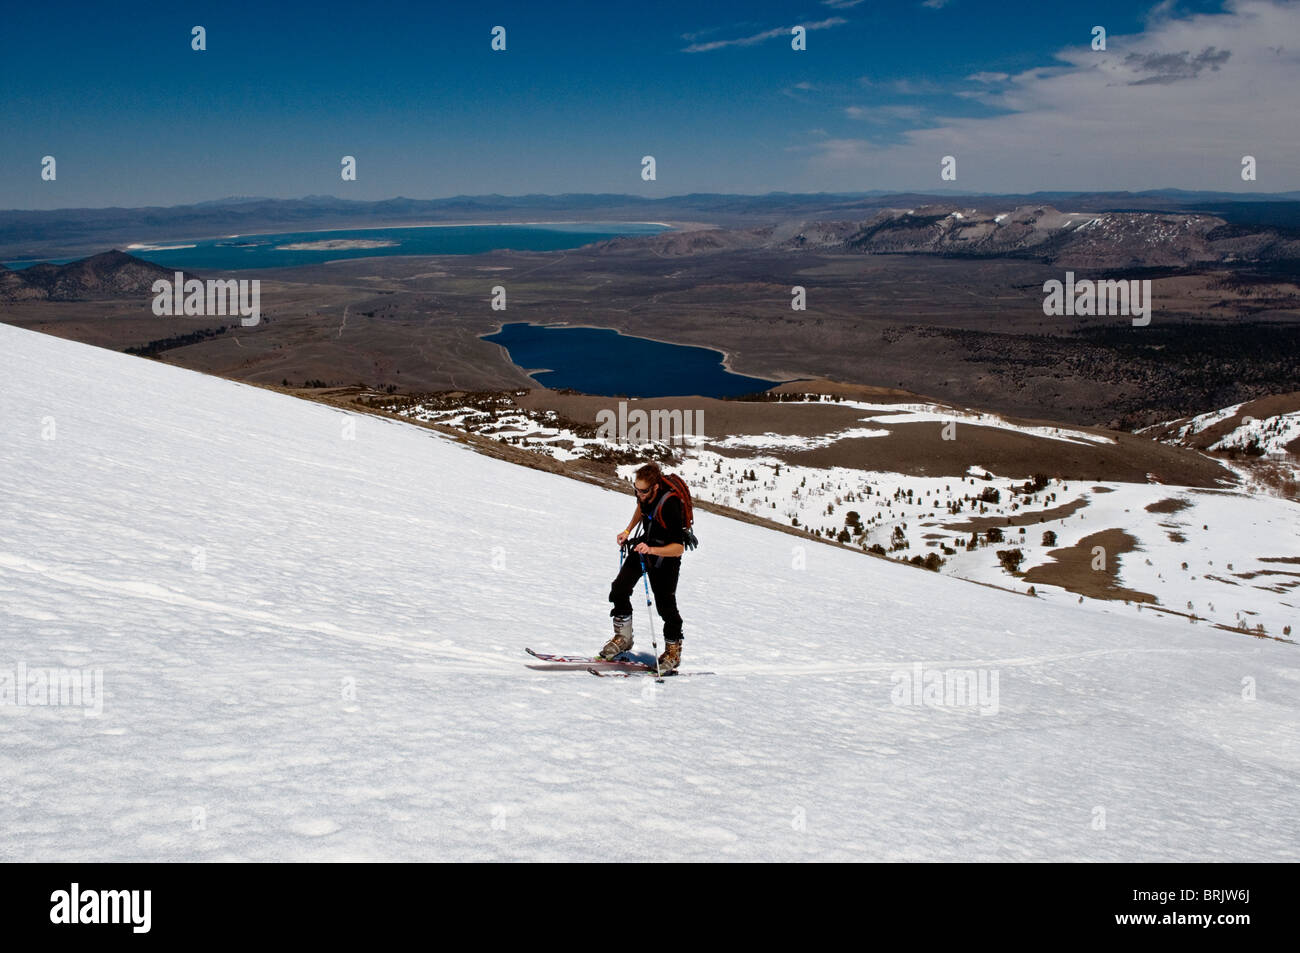 During his last ski tour for the season, a young man skins up the mountain with Mono Lake in the background, in - Stock Image